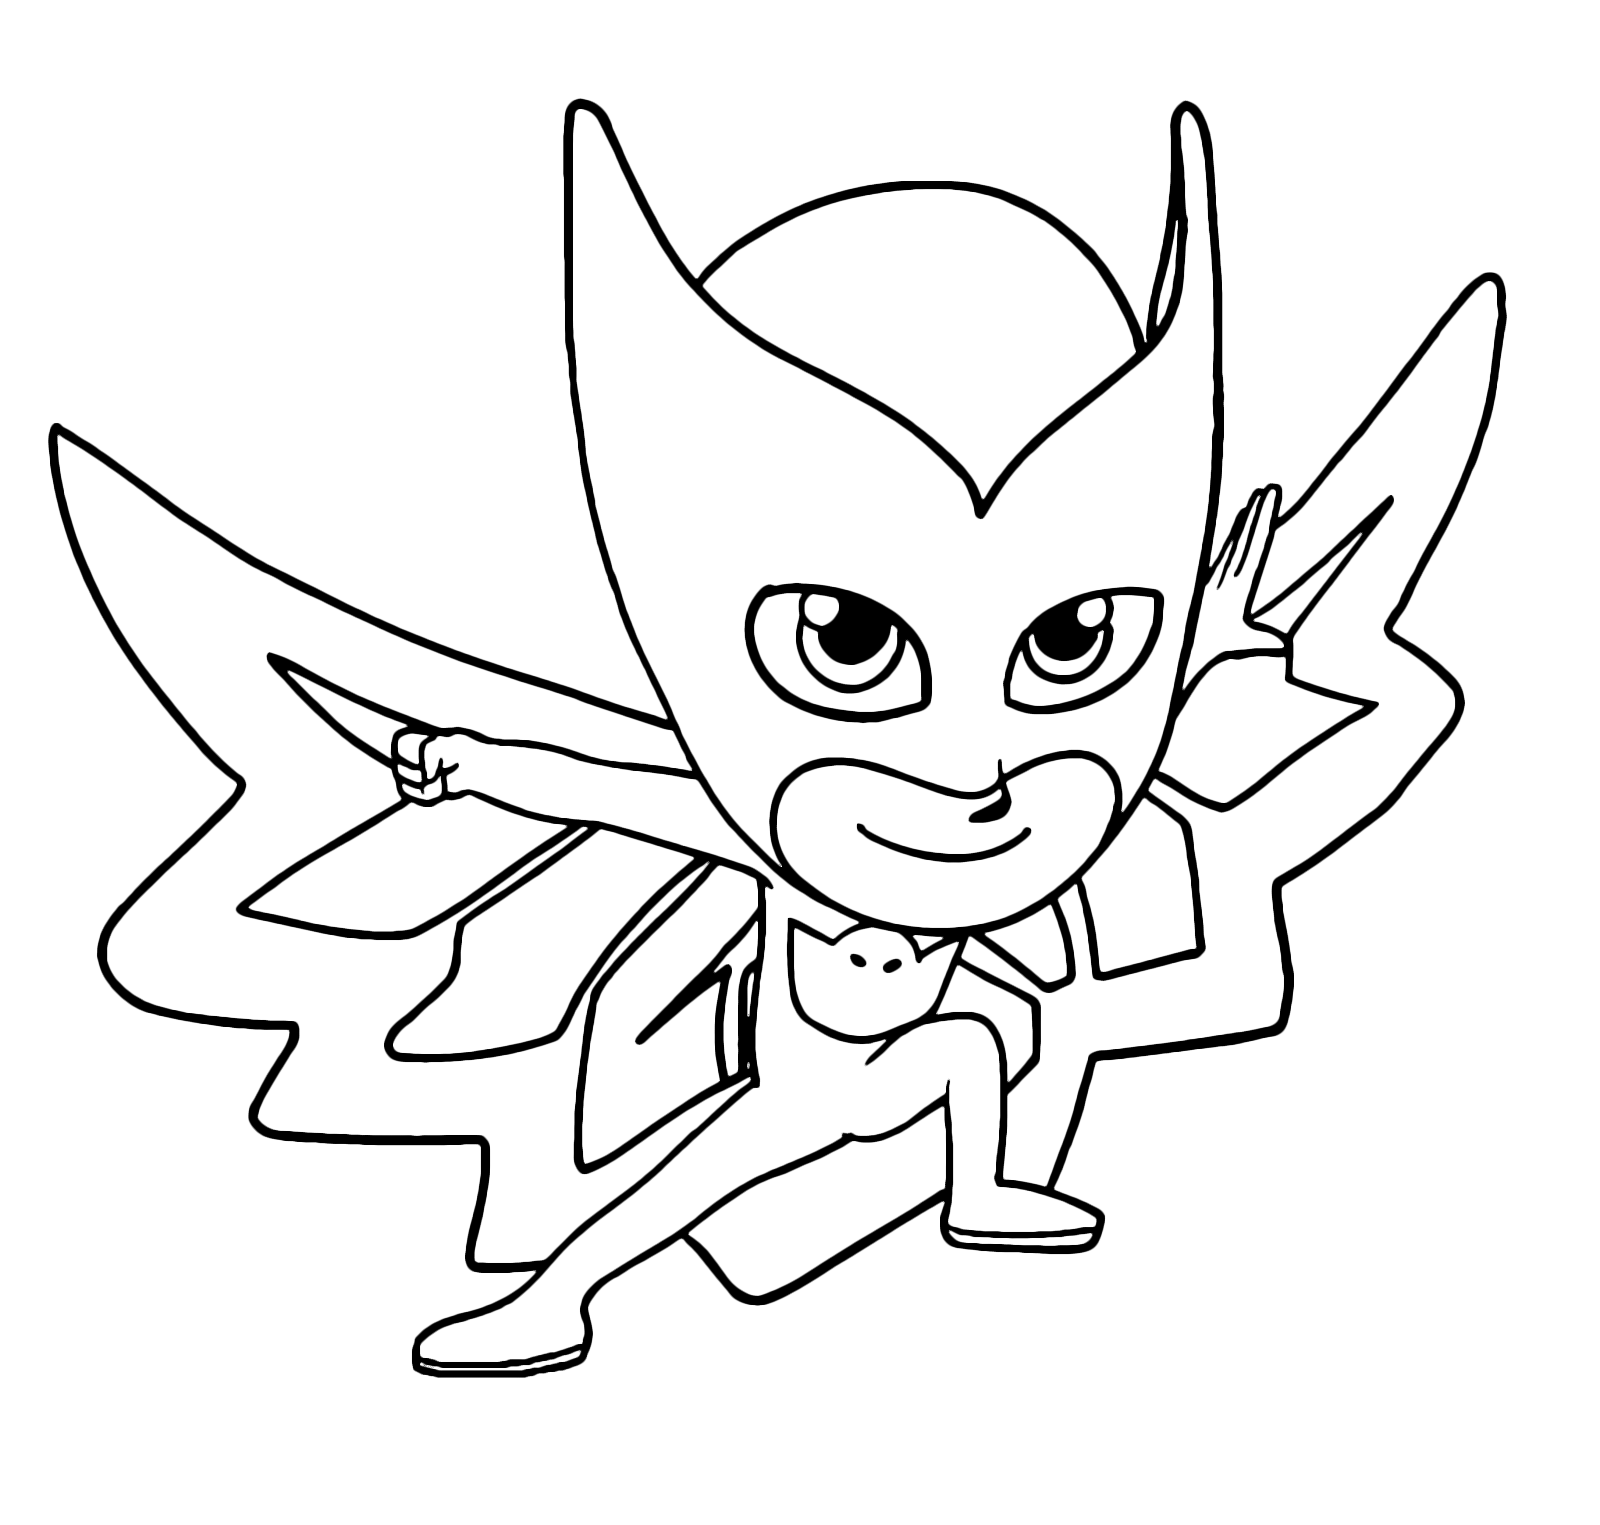 Pj Masks Owlette Ready To Defeat Enemies